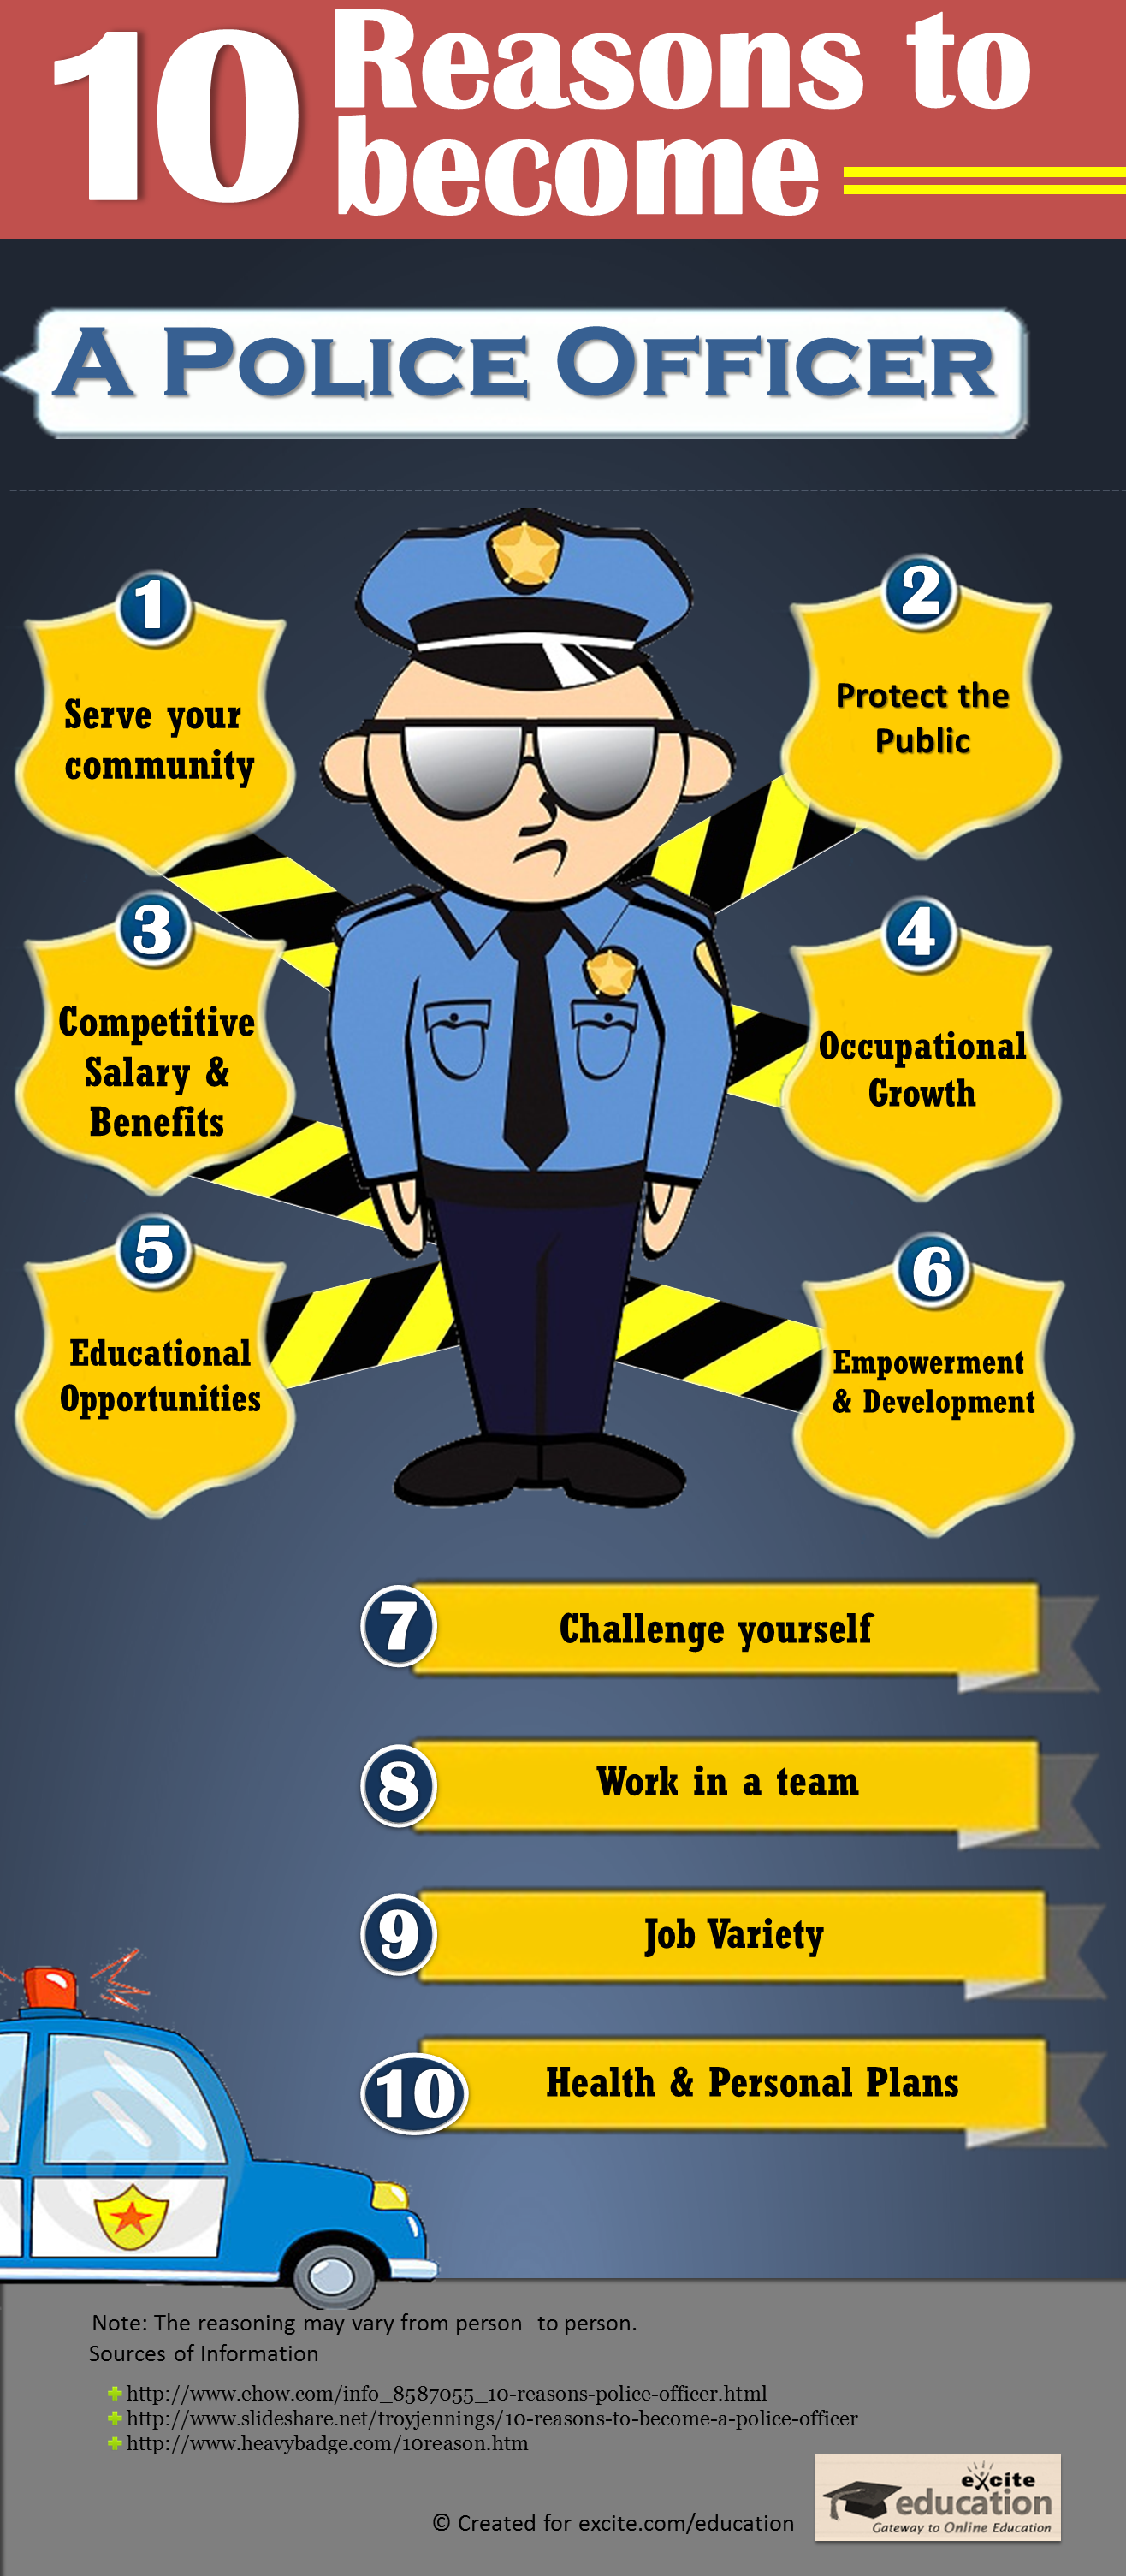 best images about training becoming a police officer on 17 best images about training becoming a police officer 9 police departments and emergency response